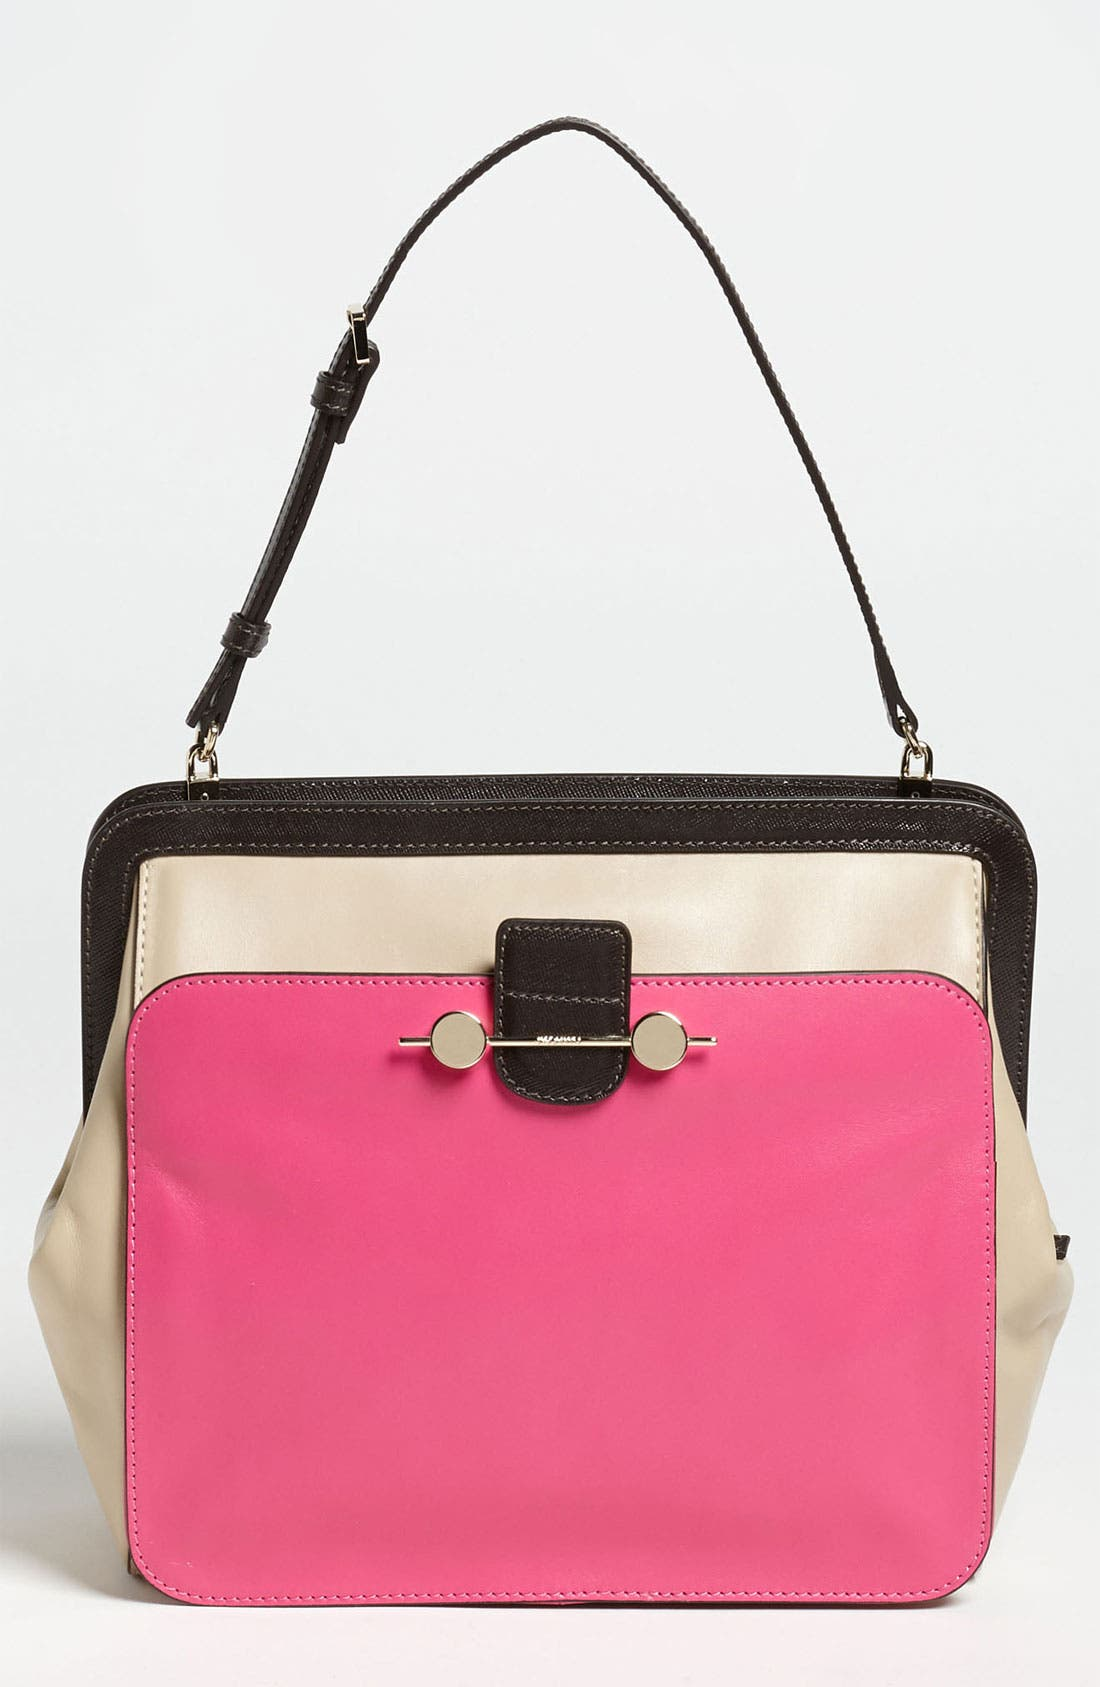 Main Image - Jason Wu 'Daphne' Shoulder Bag